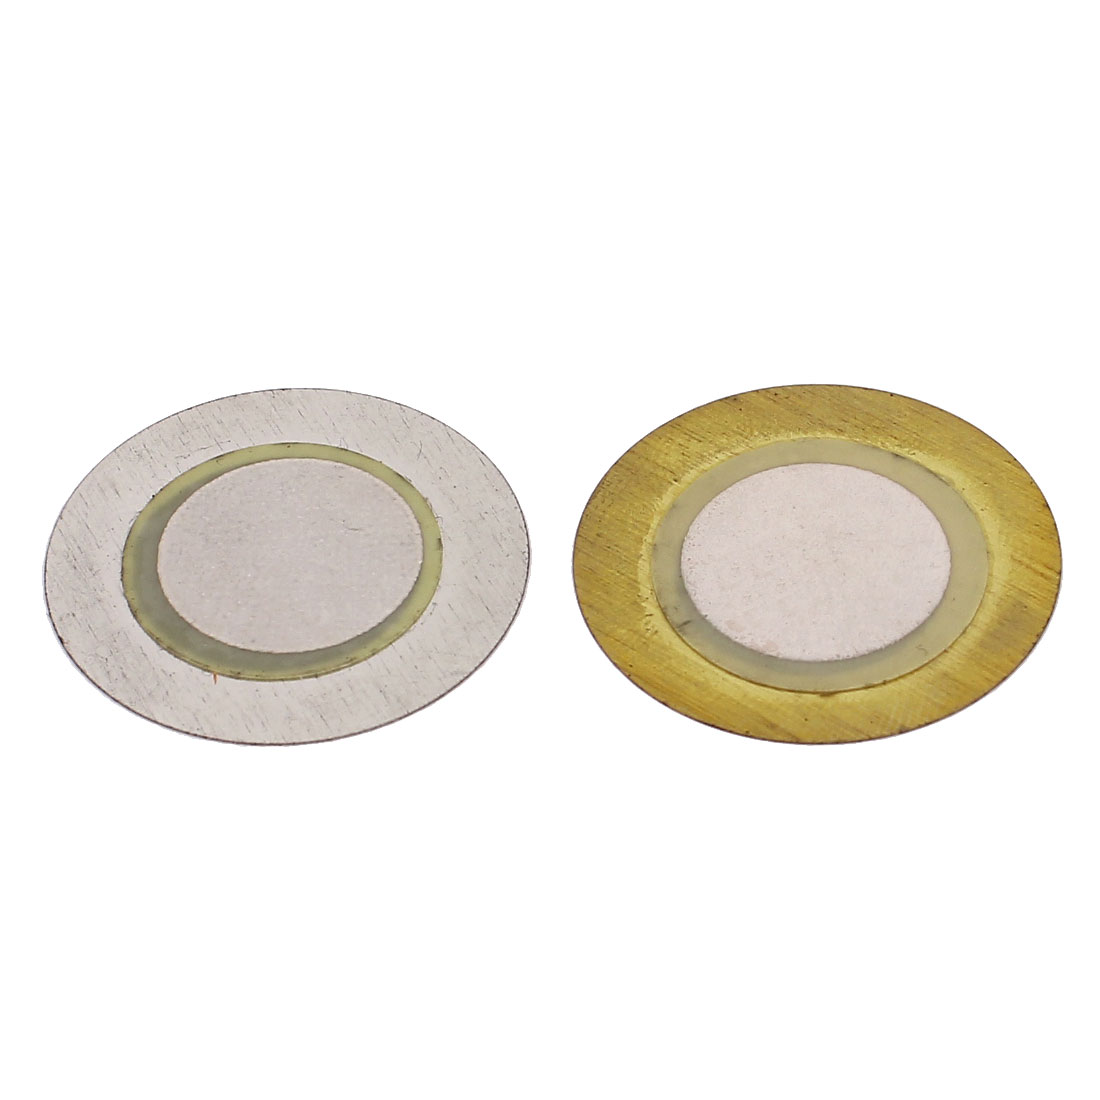 2 Pcs 27mm Dia Piezo Buzzer Disc Transducer for Pressure Sensor DIY Speaker